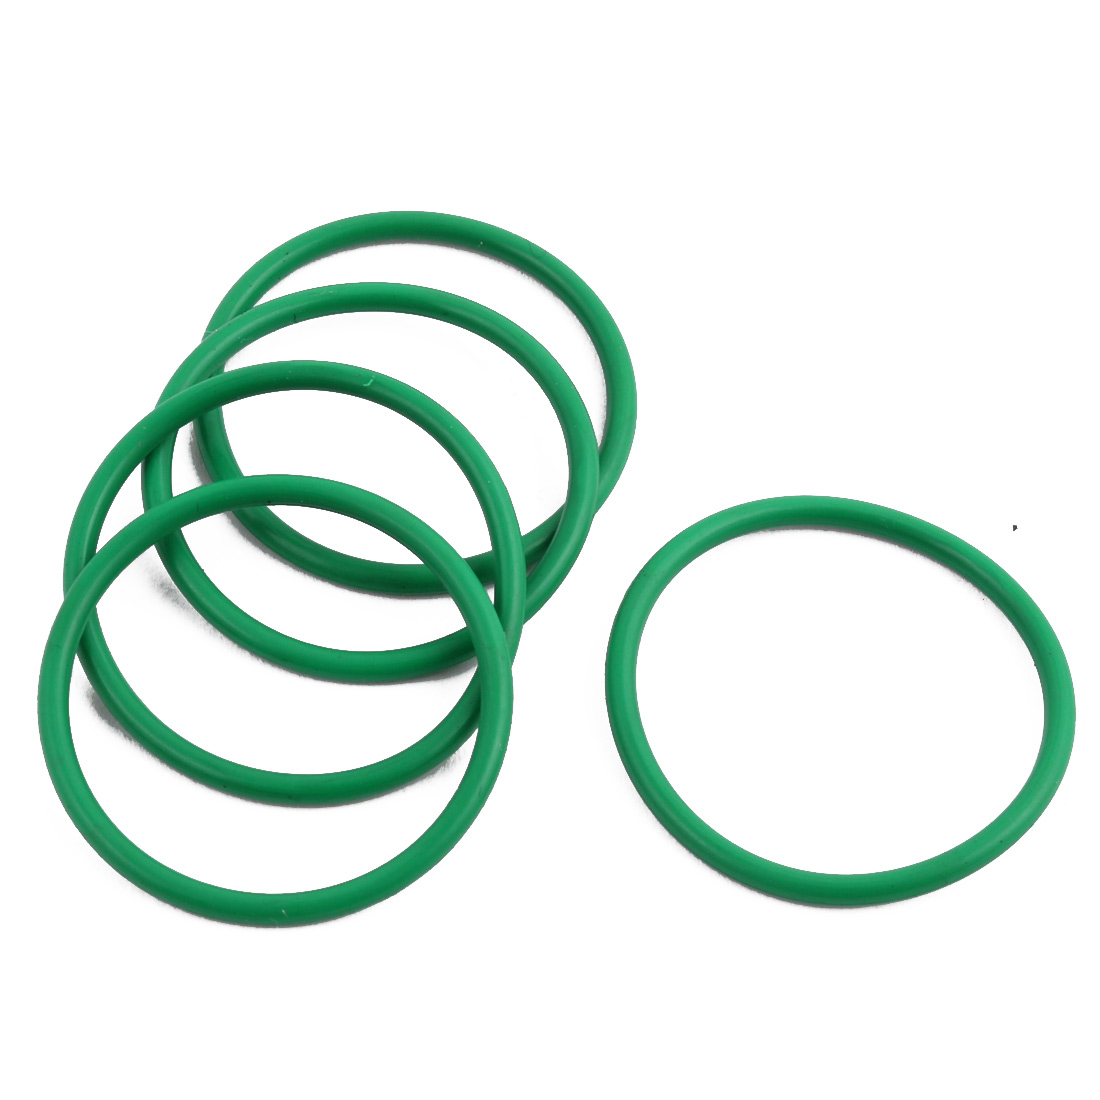 5Pcs Green 30 x 1.9mm Industrial Flexible Rubber O Ring Oil Sealing Grommets